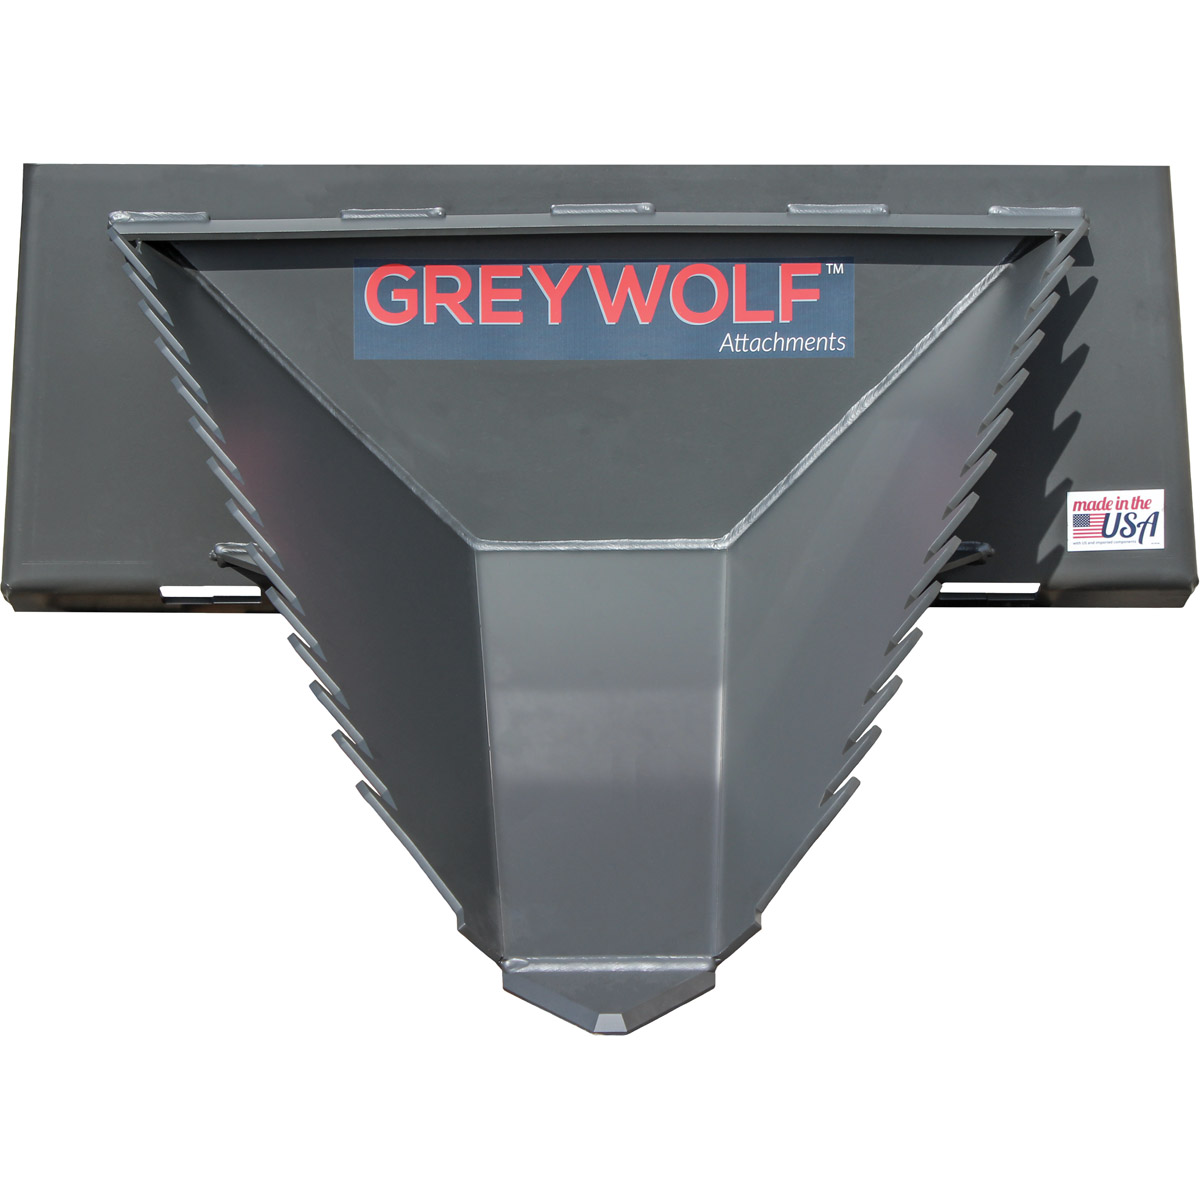 GreyWolf Stump Bucket Skid Steer Attachment